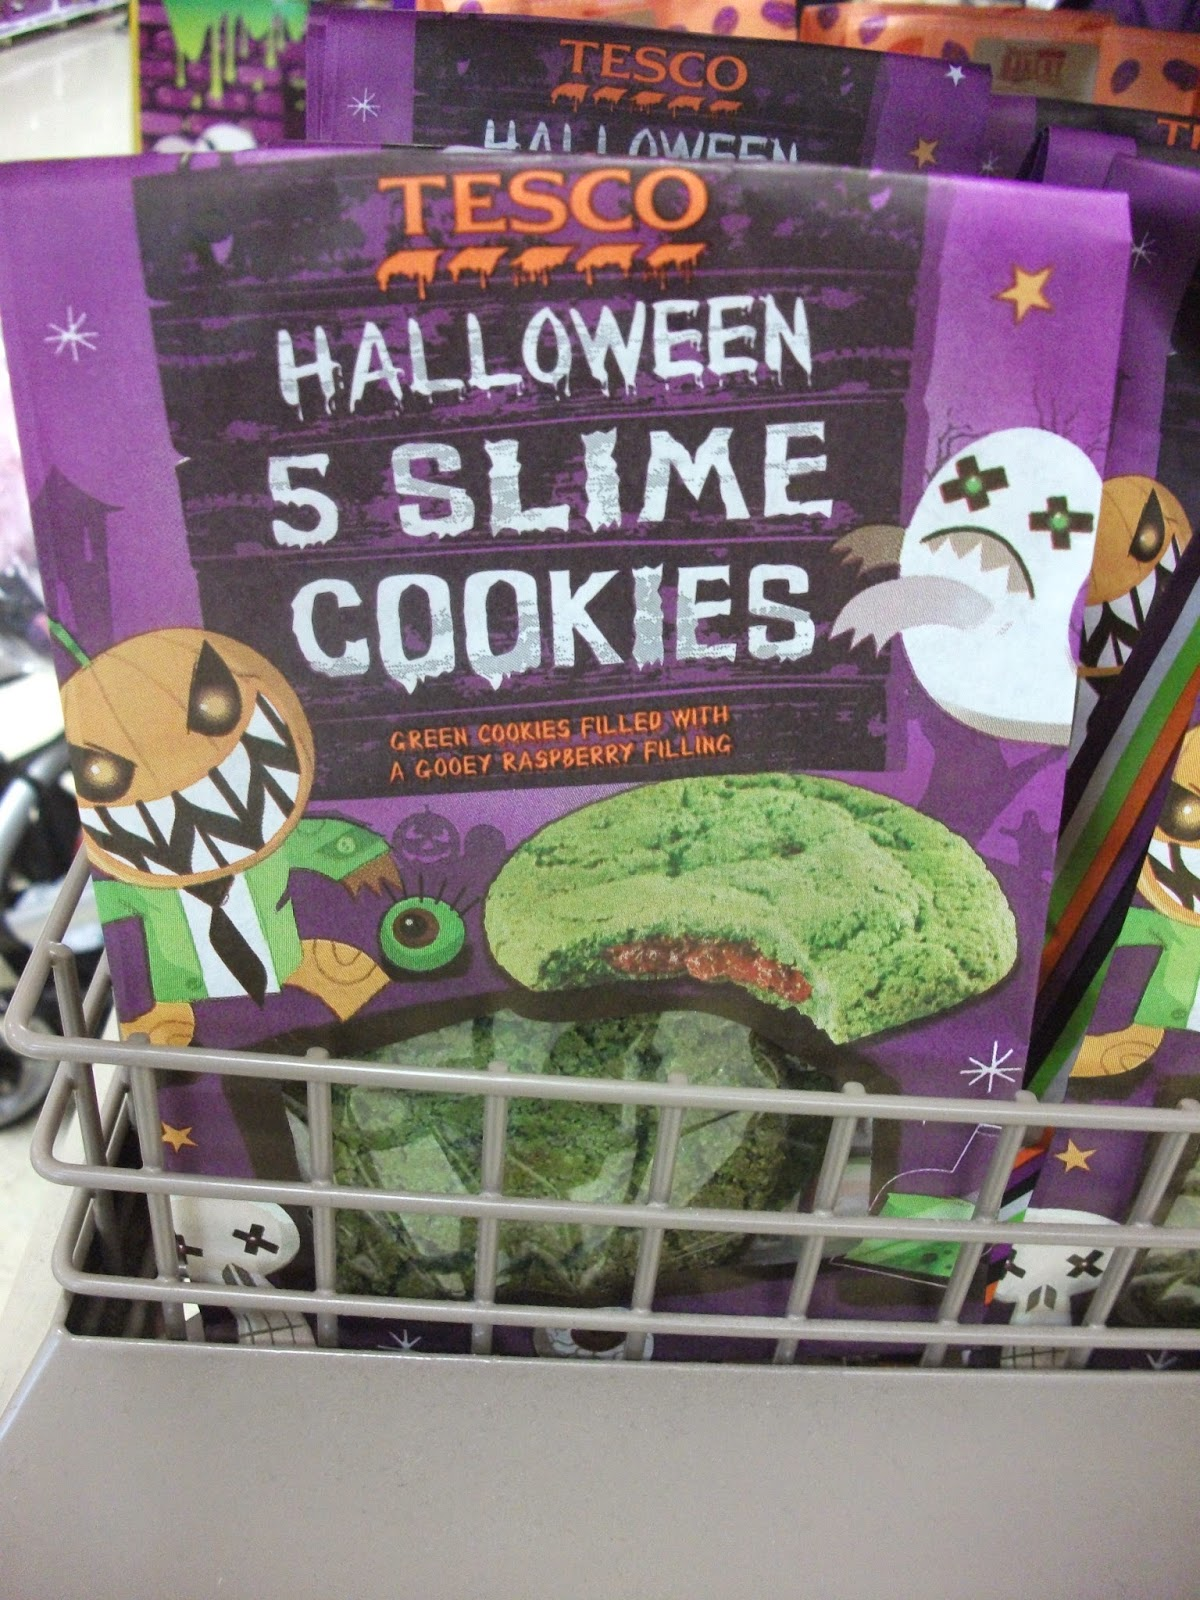 Halloween Stuff Tesco Slime Cookies Chocolate Skulls